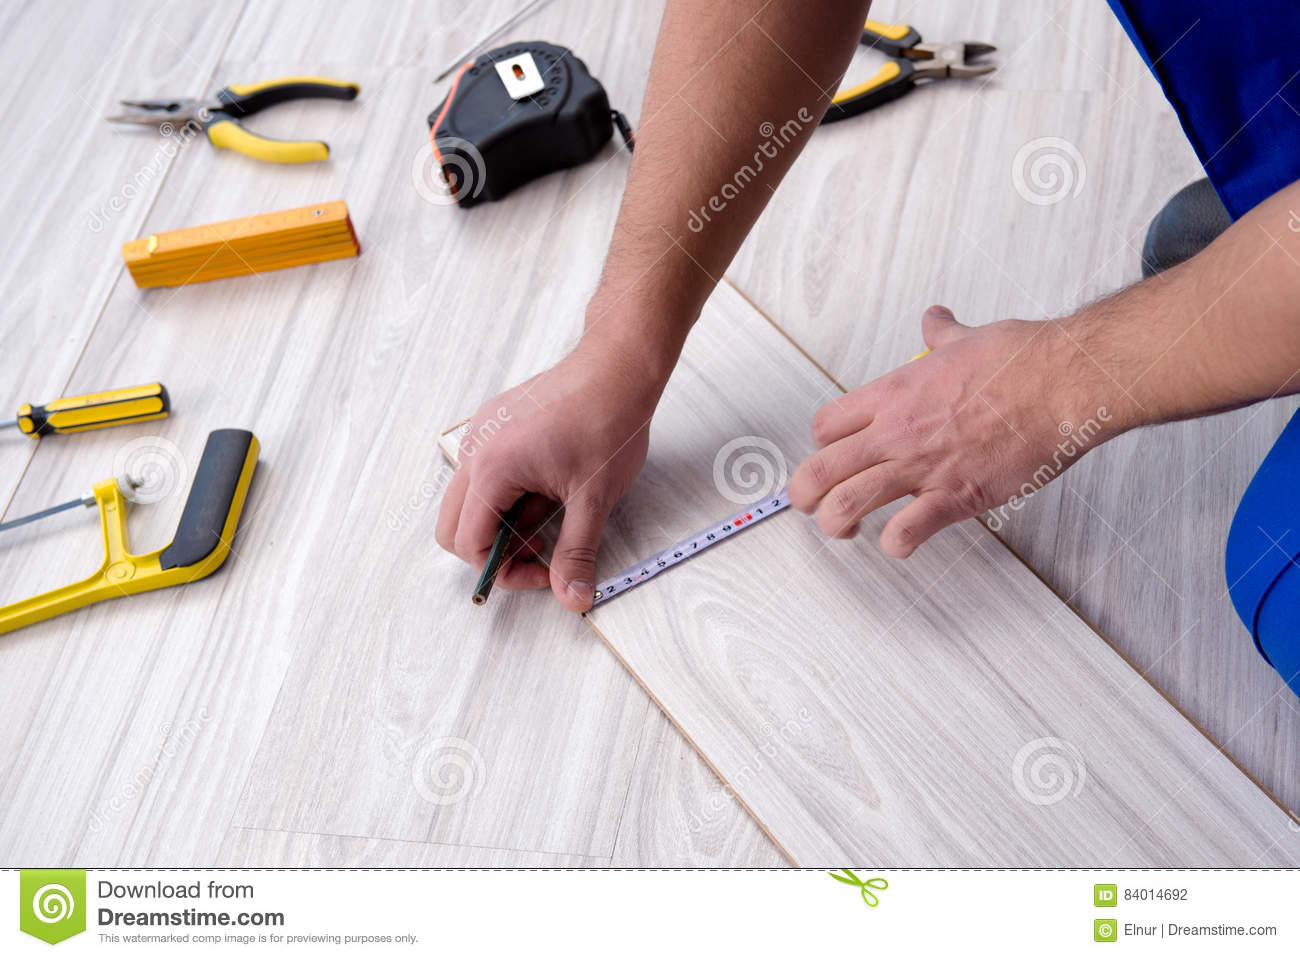 The may laying laminate flooring at home